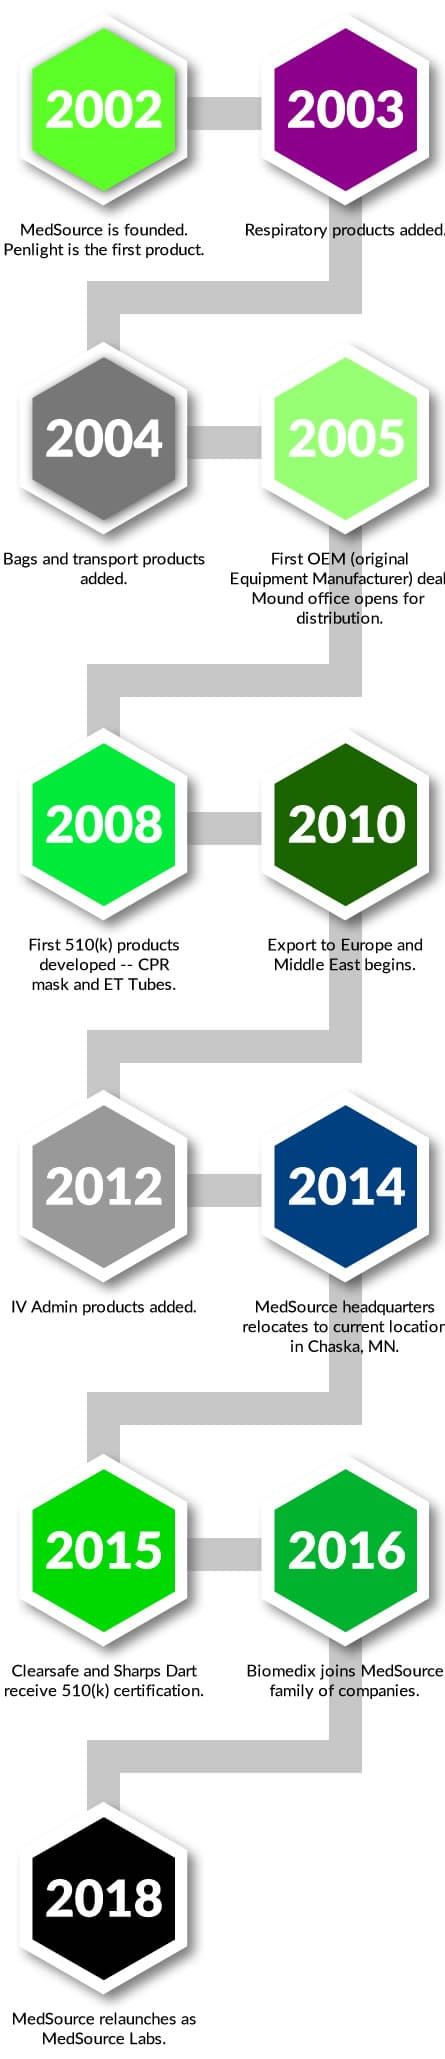 medsource progress over the years